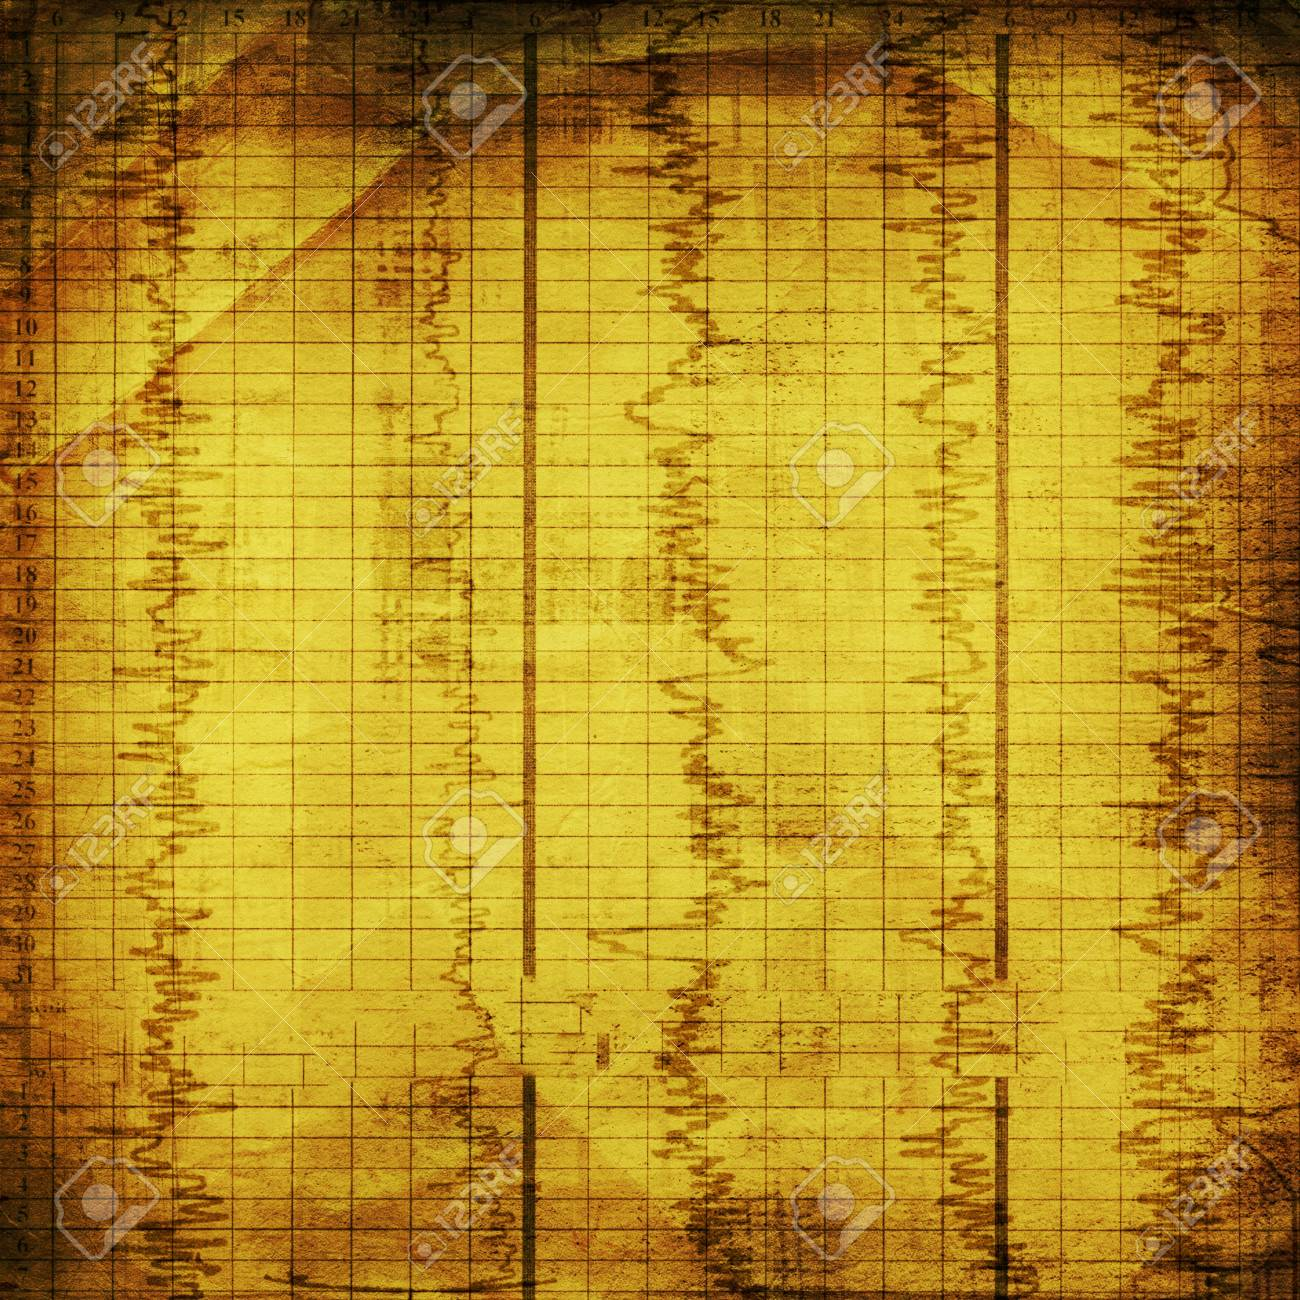 Grunge abstract paper background with old diagram Stock Photo - 6422034